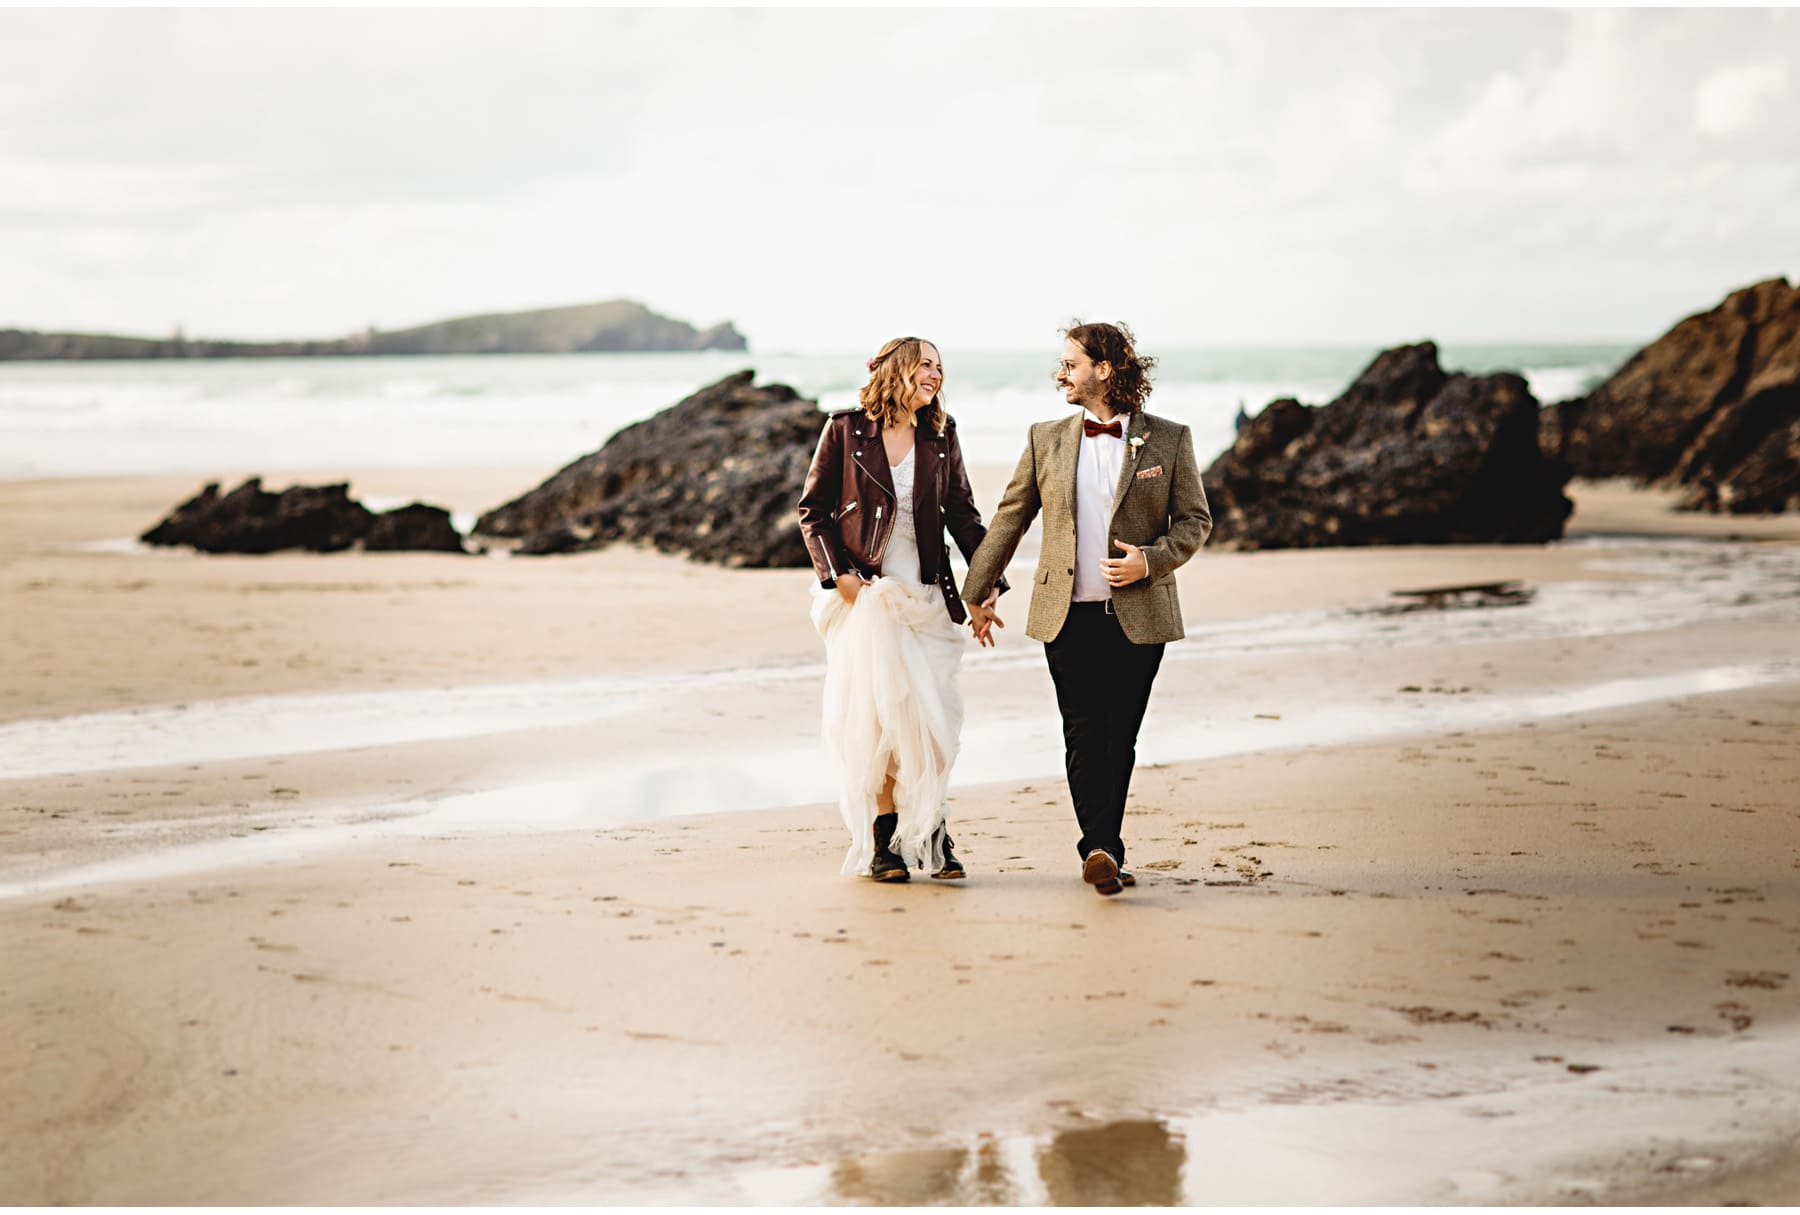 the bride and groom walking on the beach